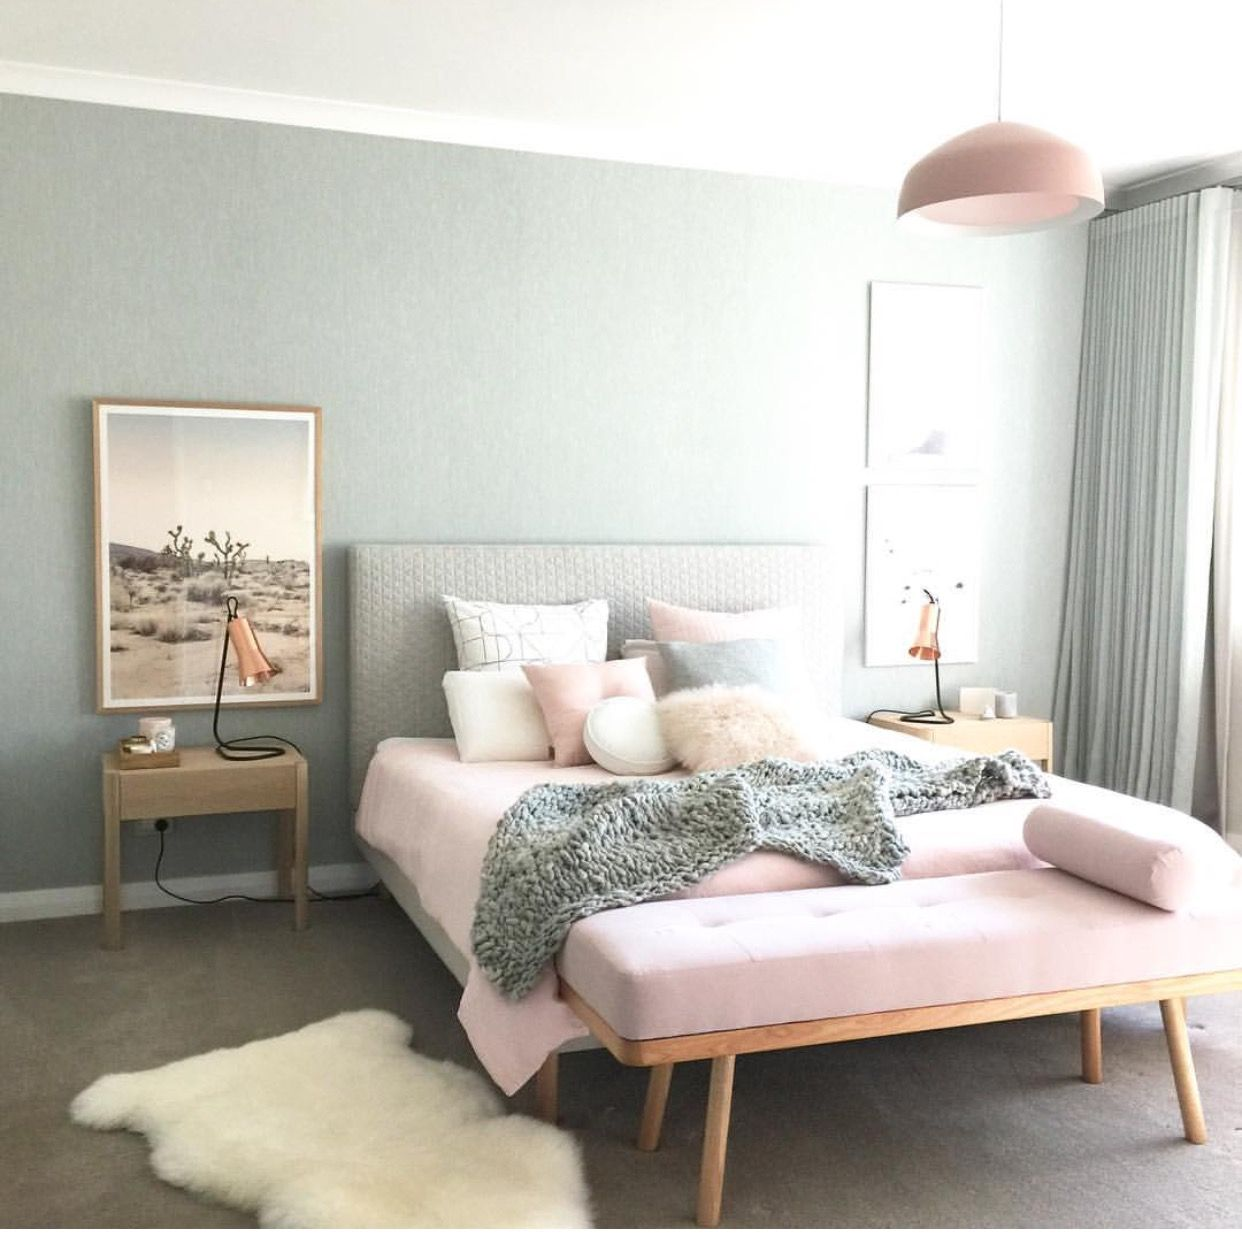 Pastel Bedroom | PASTELS | Pinterest | Pastel bedroom, Pastels and ...